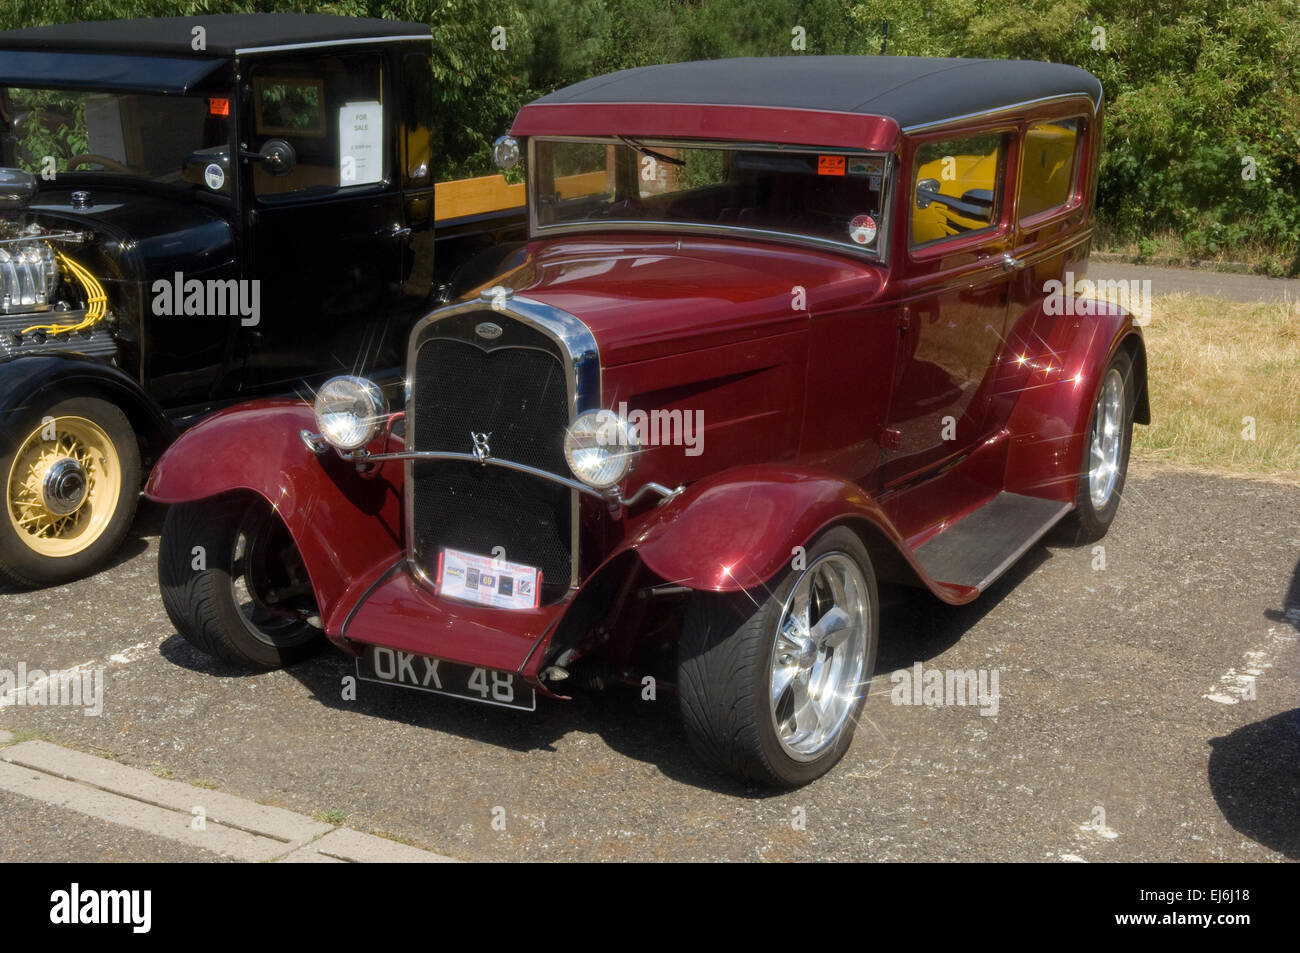 1930 Ford Model A sedan hot rod Stock Photo: 80051140 - Alamy